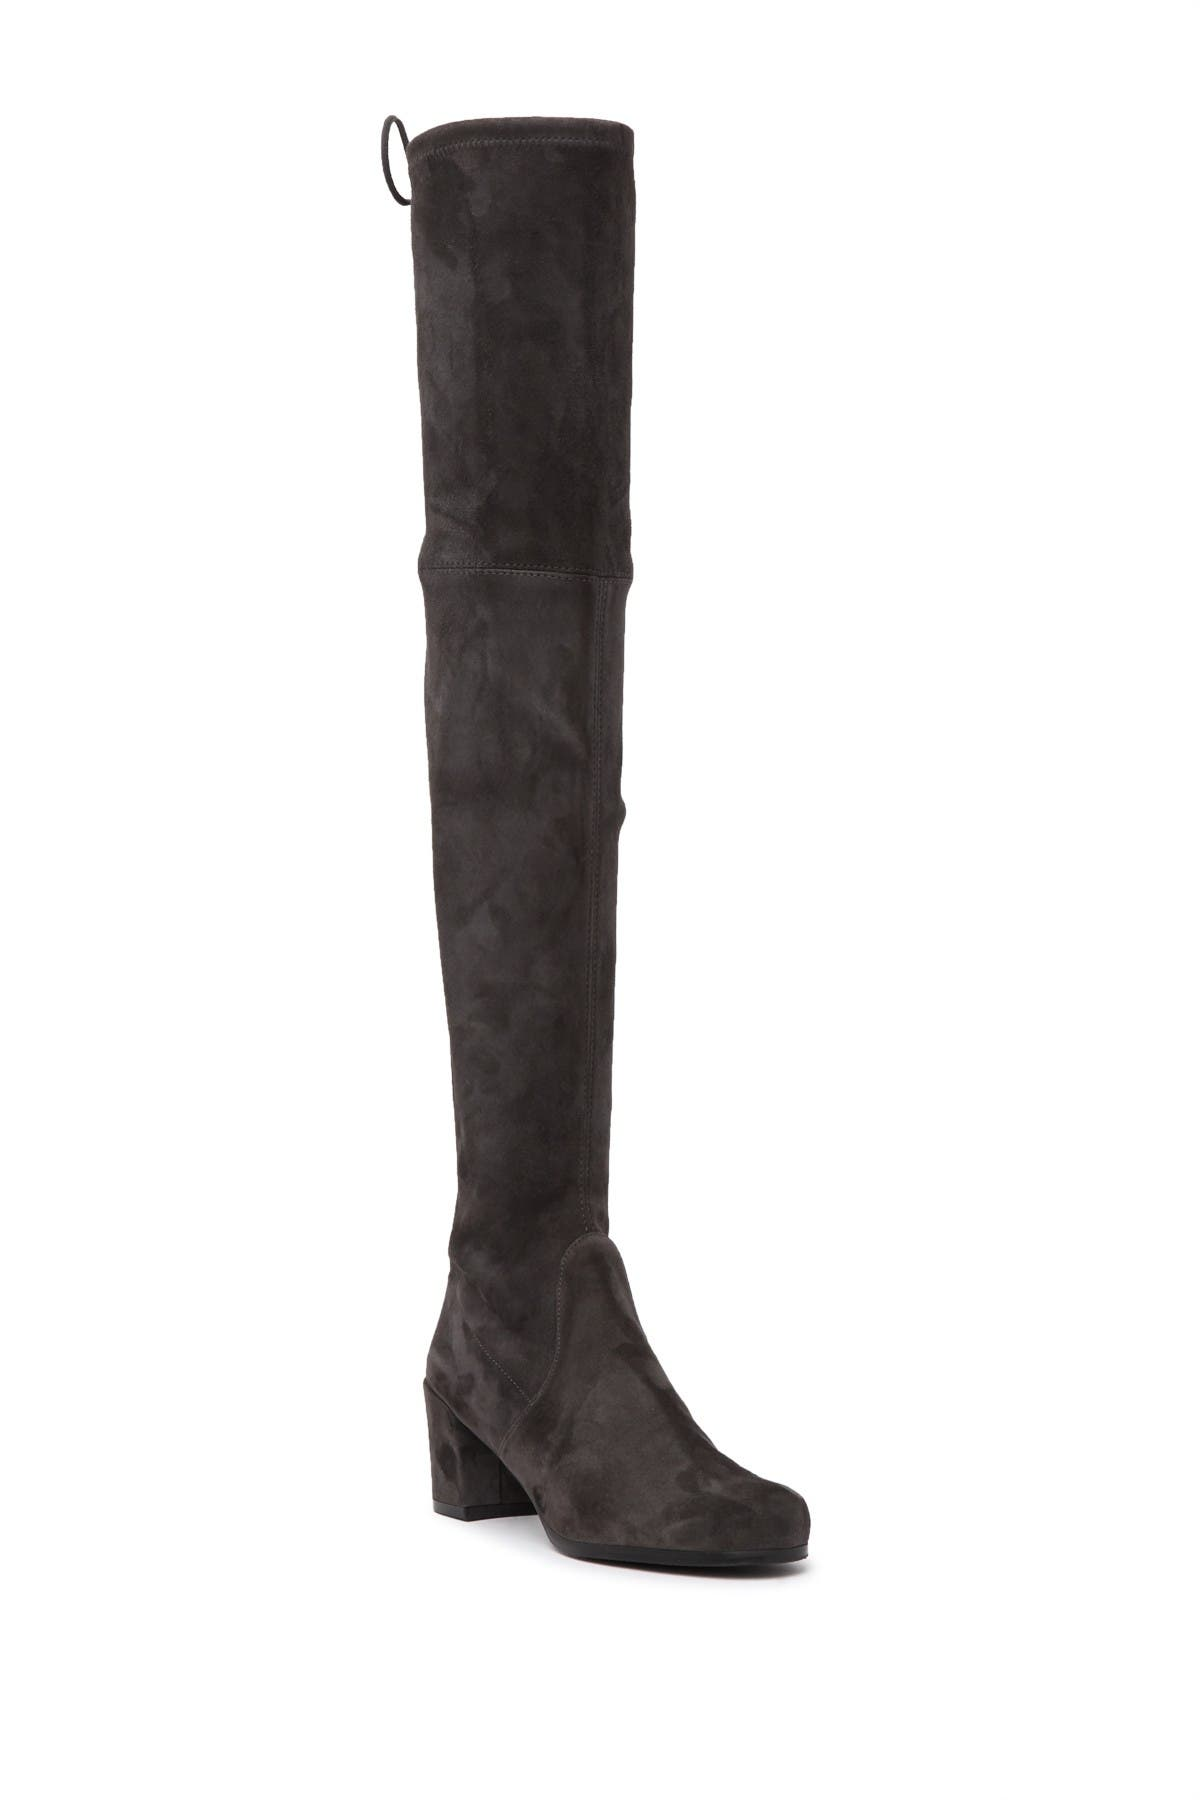 Image of Stuart Weitzman Hinterland Over-the-Knee Boot - Wide Width Available